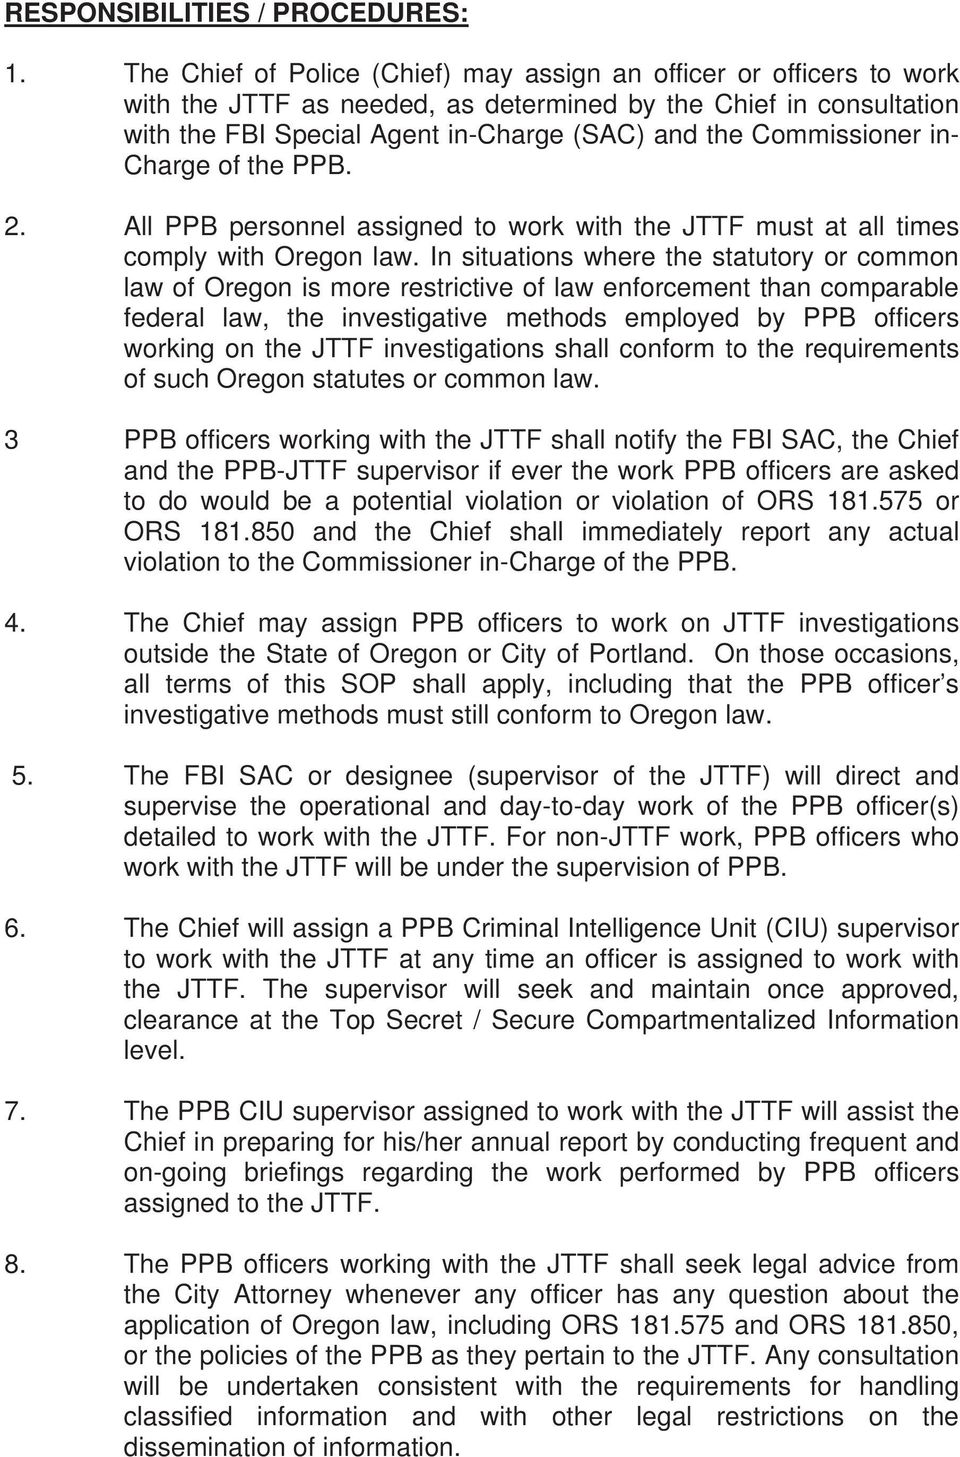 Commissioner in- Charge of the PPB. 2. All PPB personnel assigned to work with the JTTF must at all times comply with Oregon law.